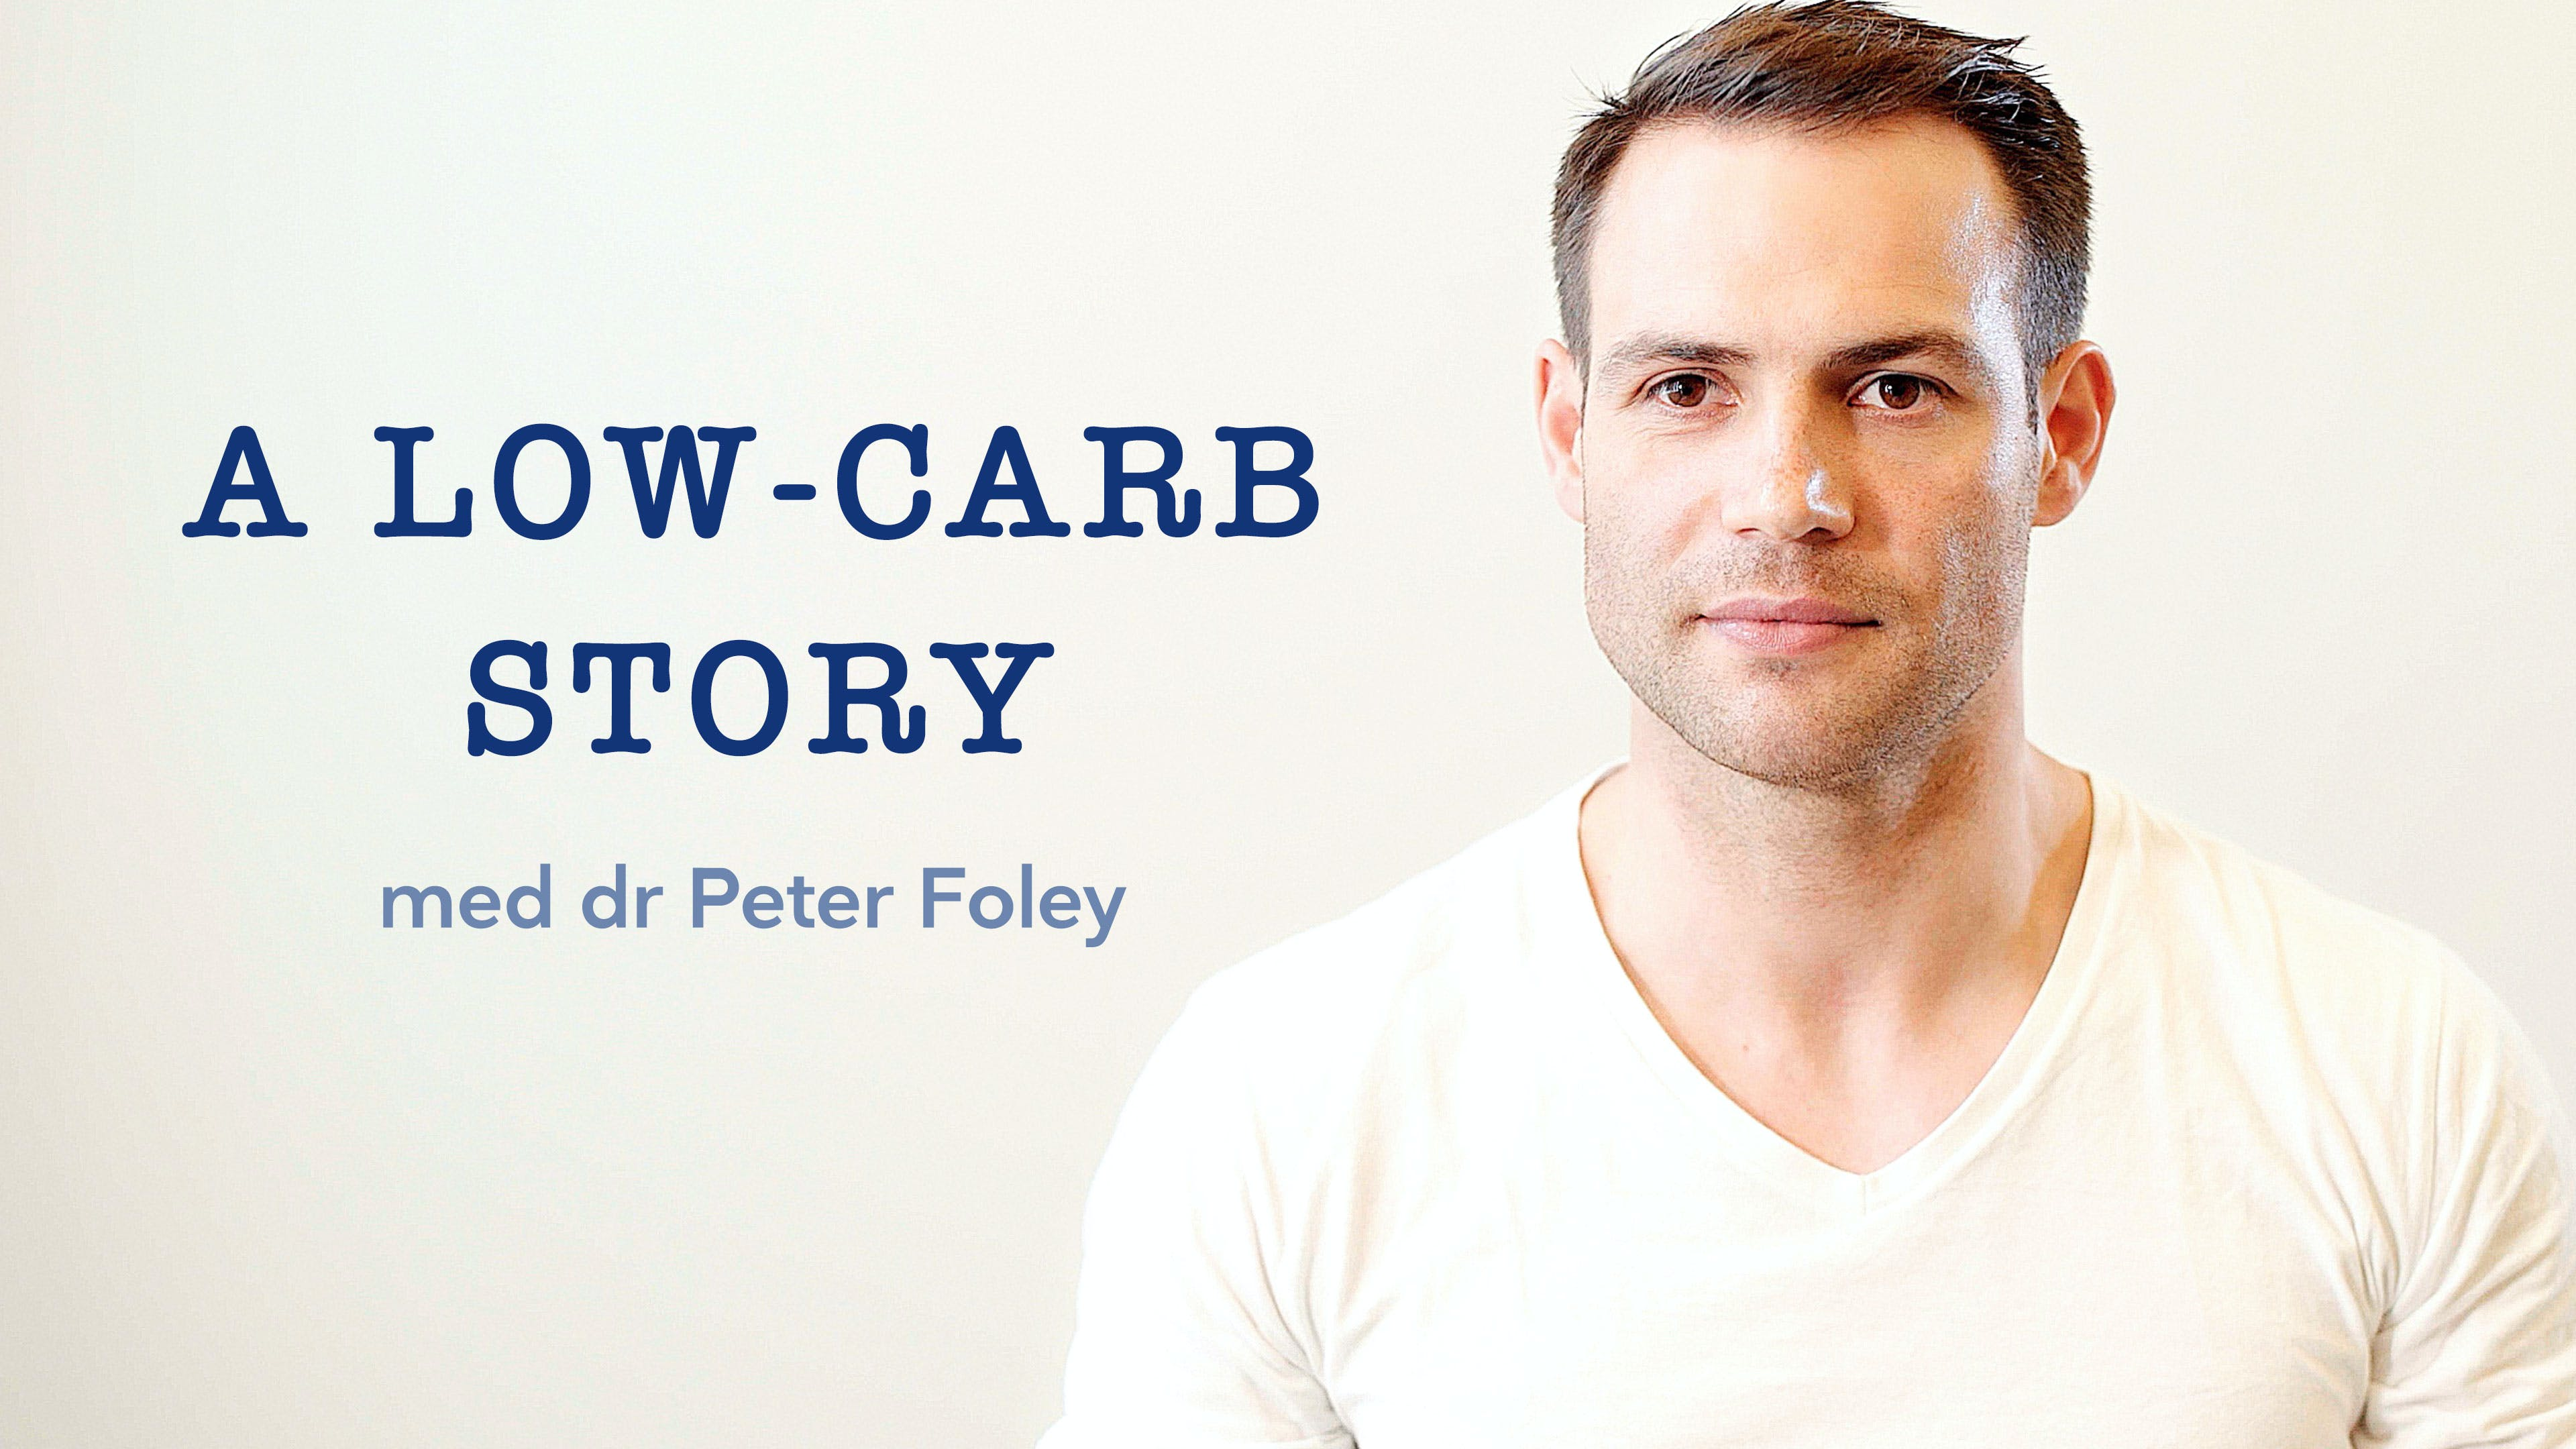 A low-carb story med dr Peter Foley